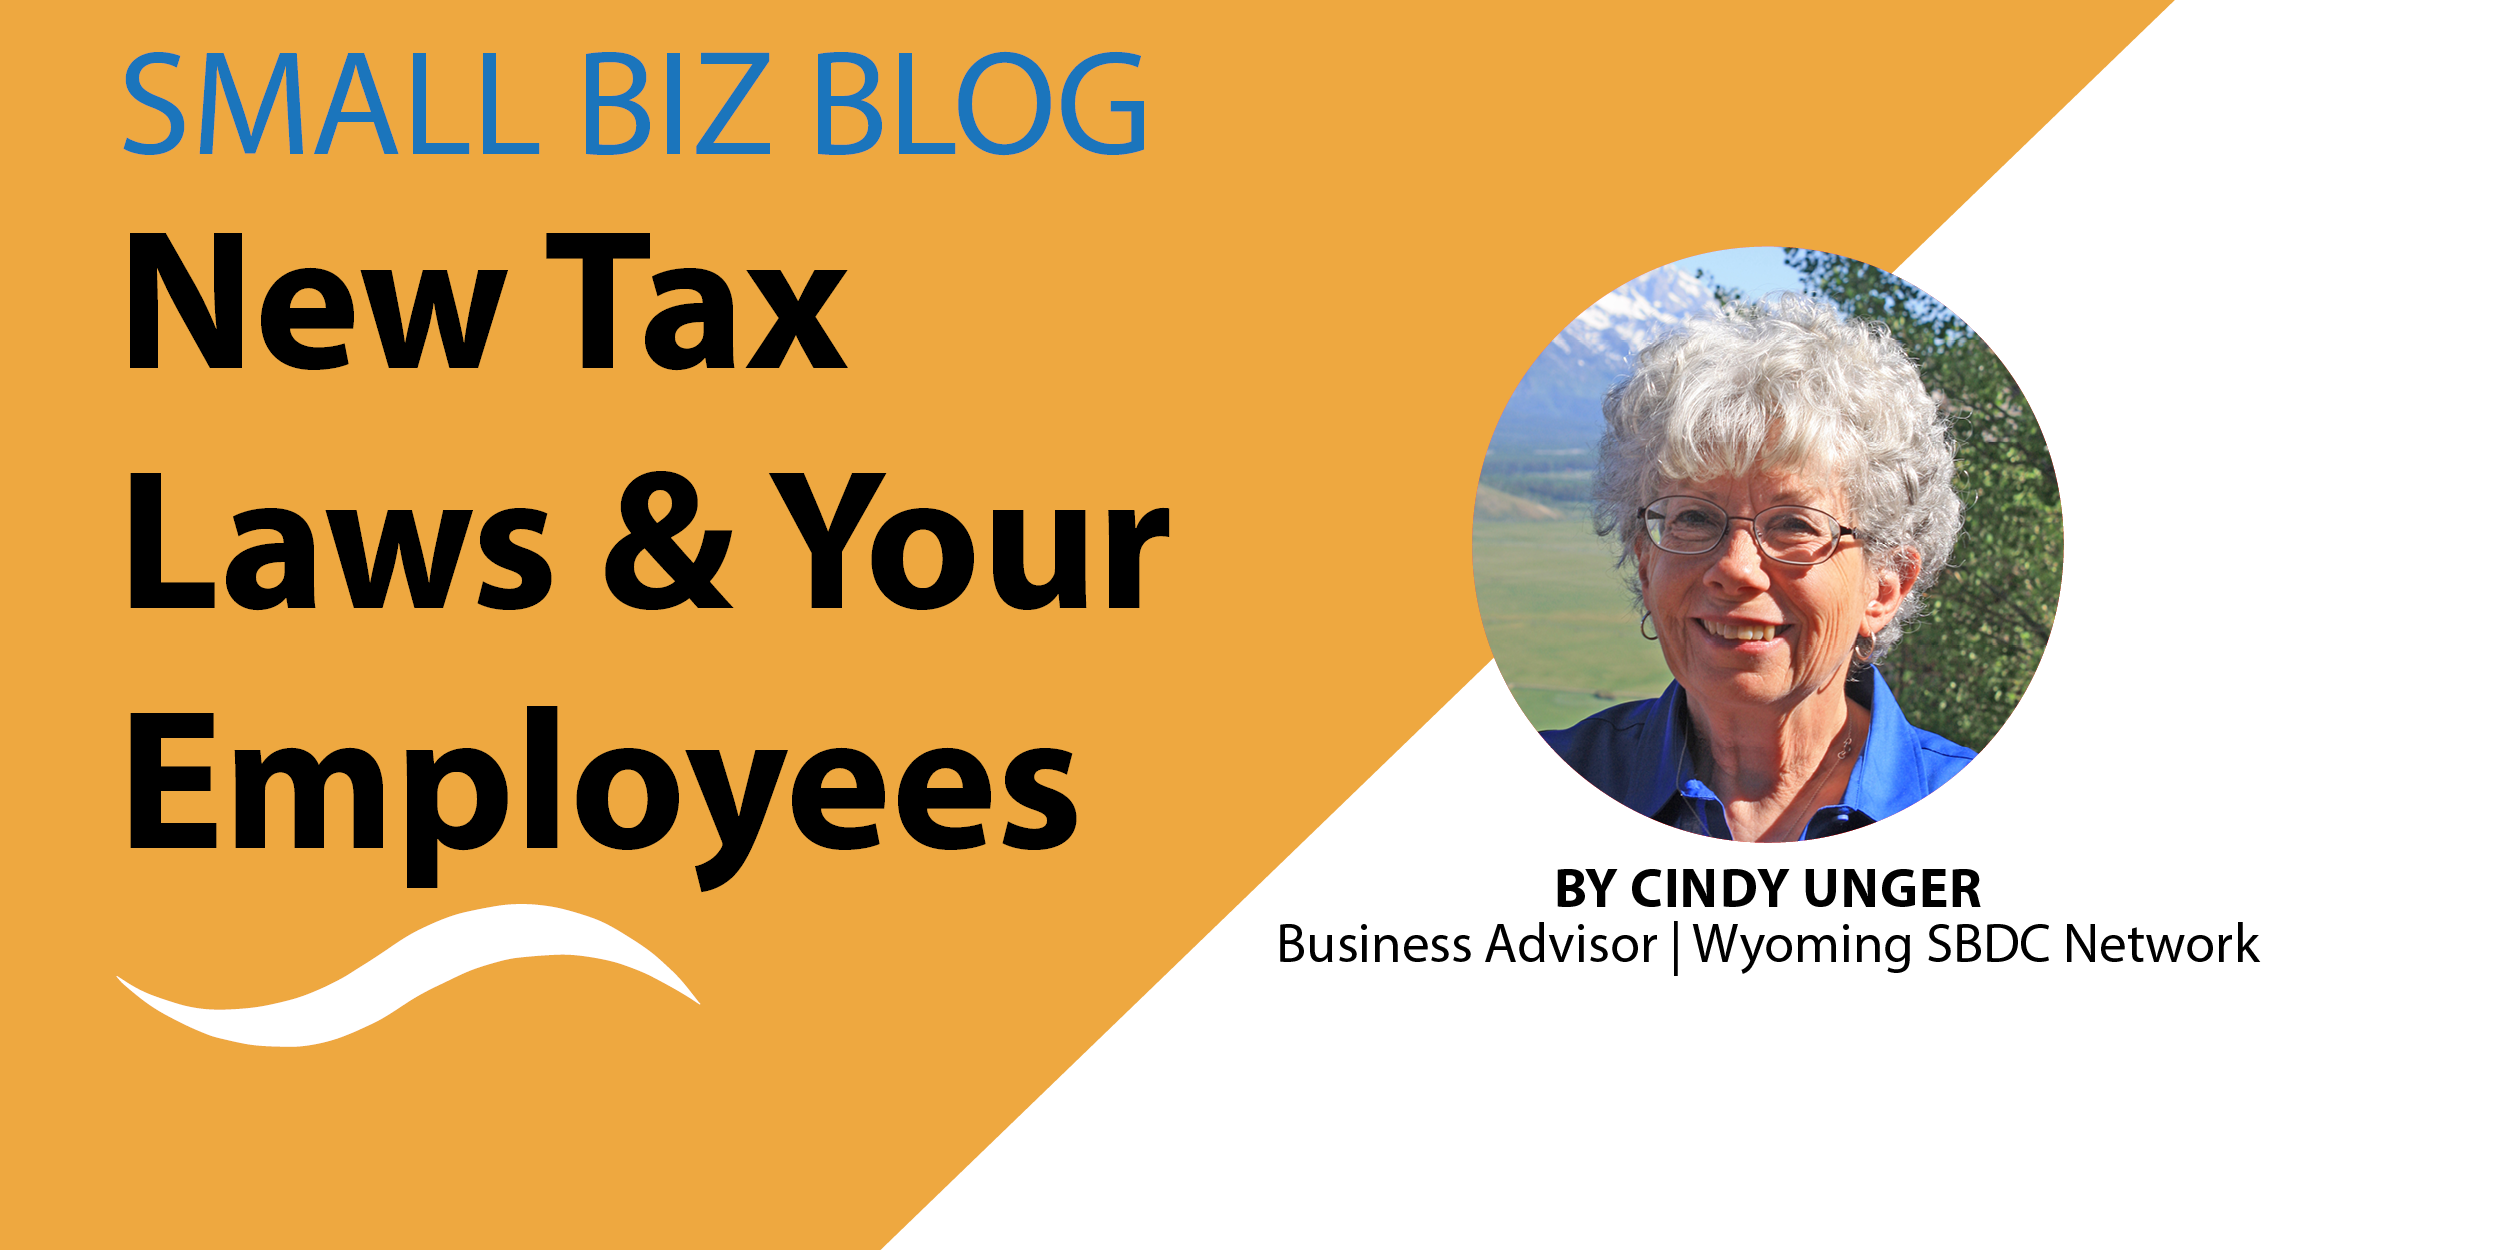 What Employers Need to Know About the New Tax Law